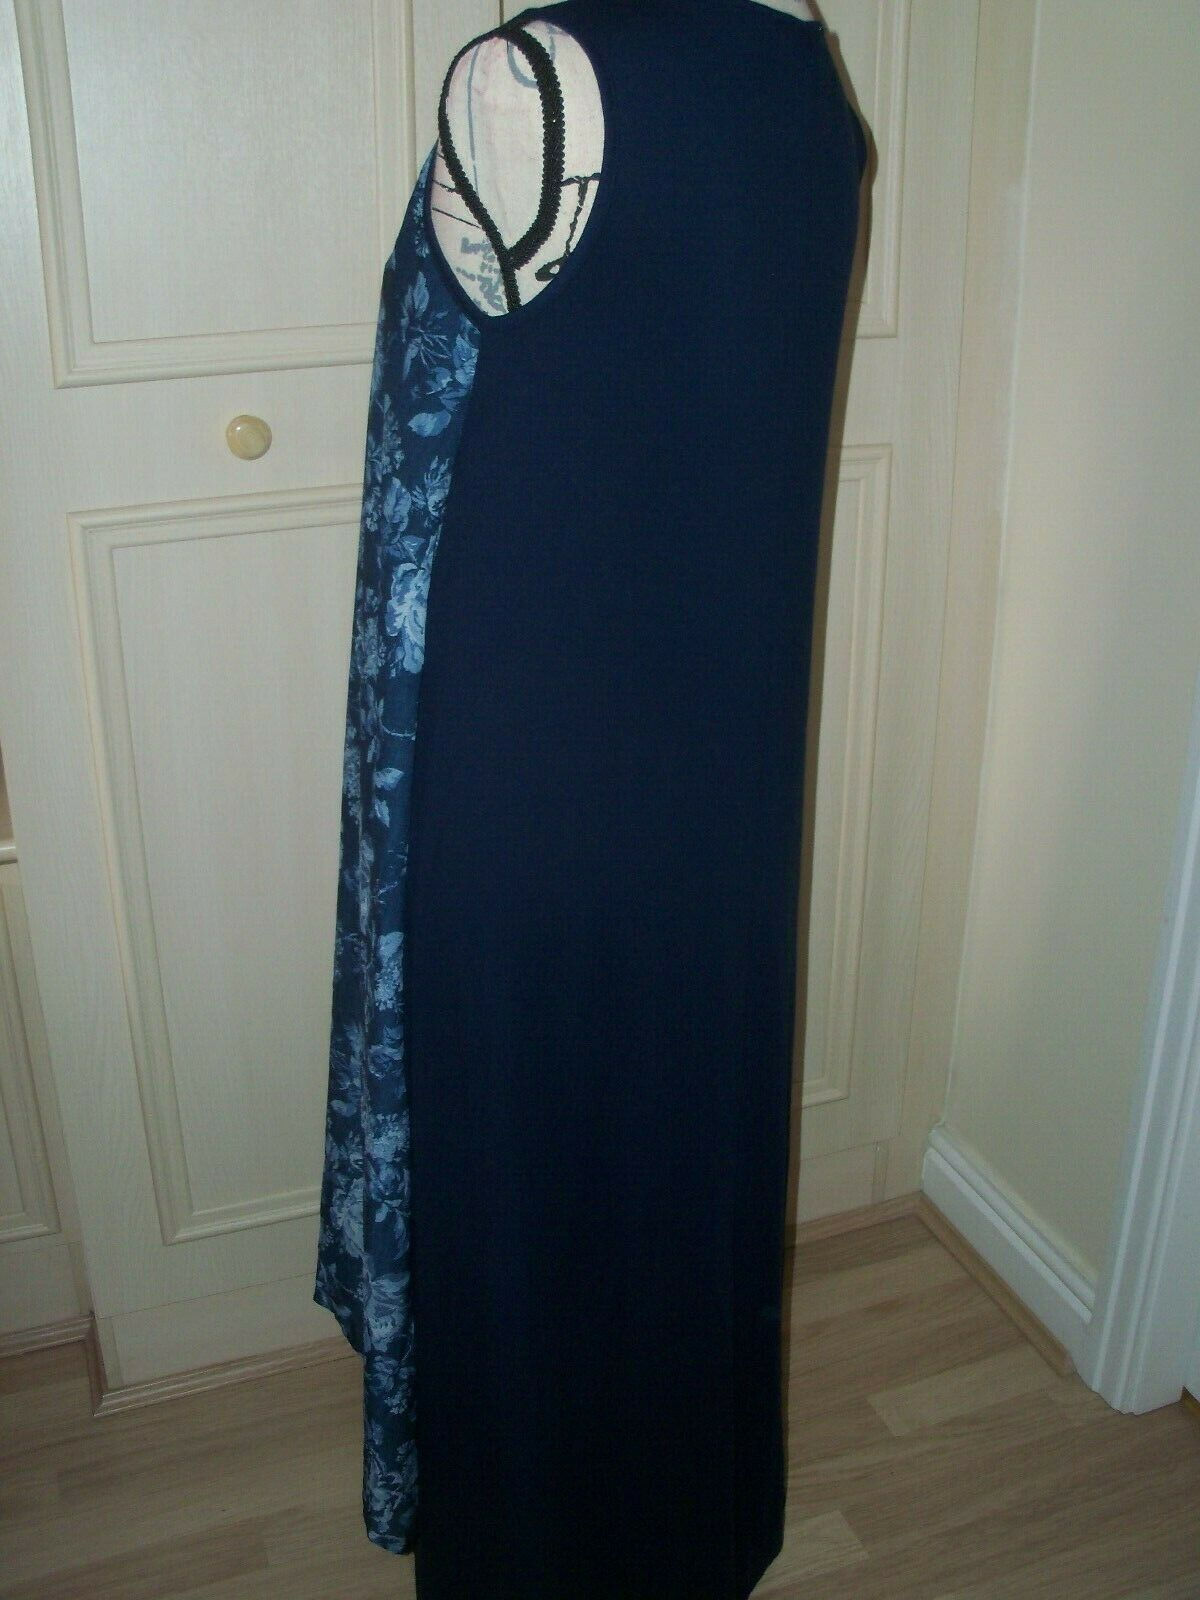 NEW JOIN JOIN JOIN CLOTHES Maxi Dress Navy with Floral overlay Size UK Small 24c9bd